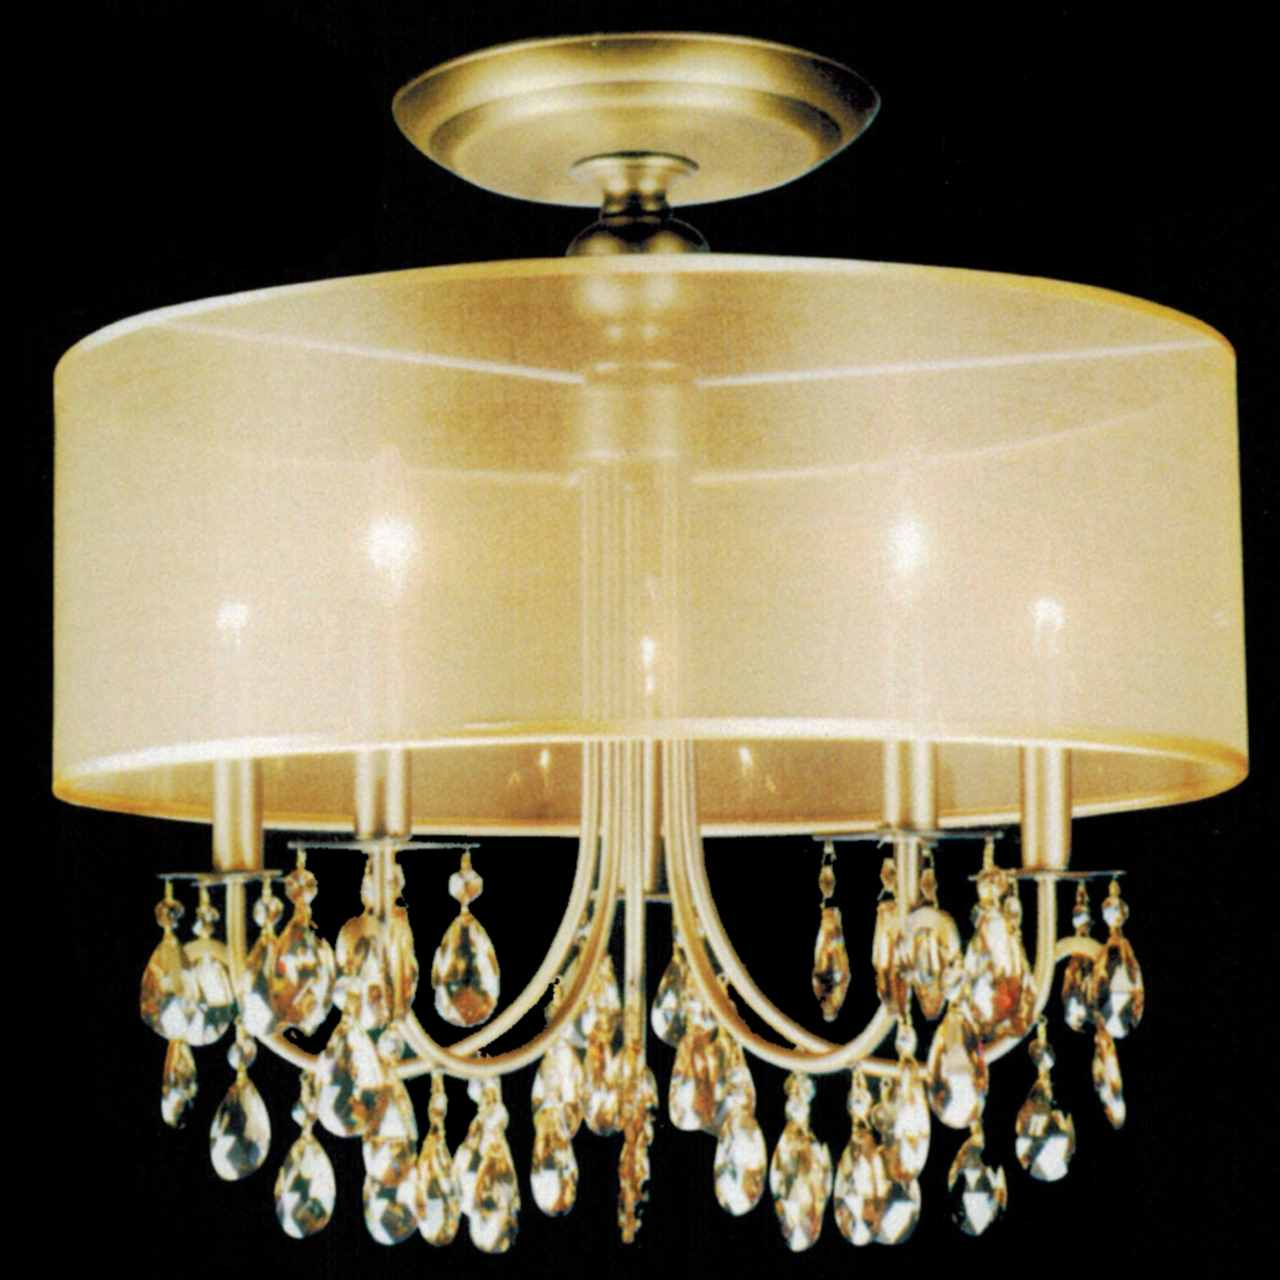 Brizzo lighting stores 22 organza contemporary round crystal flush picture of 22 organza contemporary round crystal flush mount ceiling lamp antique brass finish champagne aloadofball Gallery